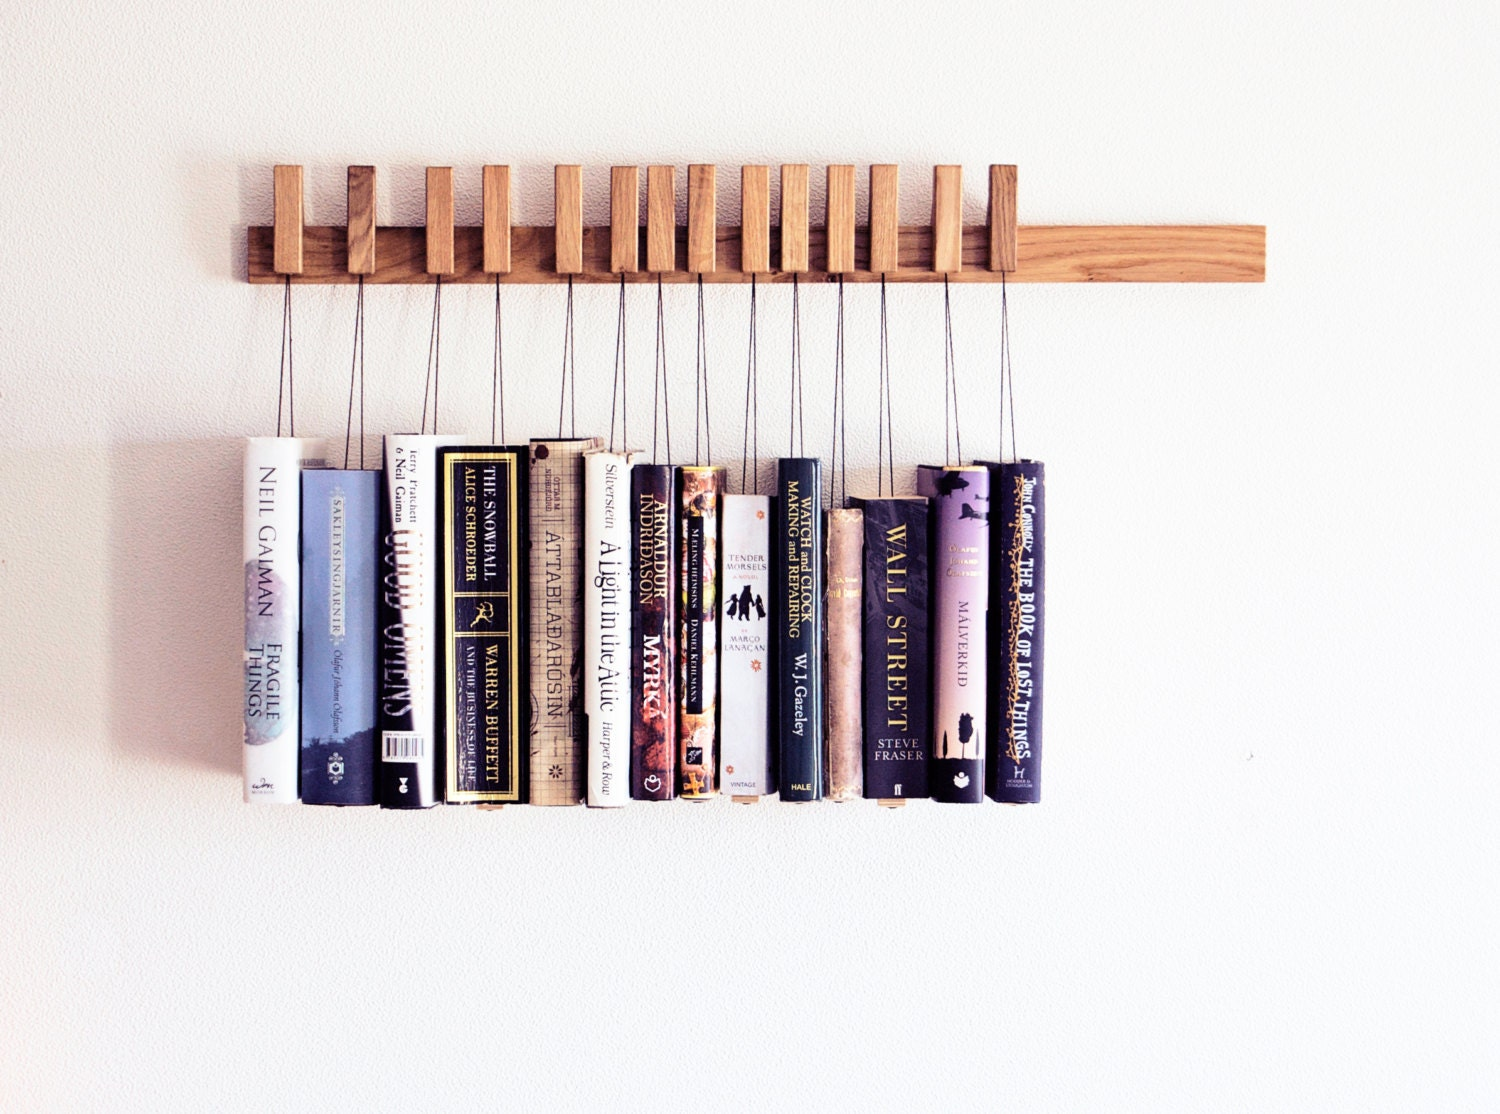 Custom Made Wooden Book Rack / Bookshelf In Oak. The Pins Are